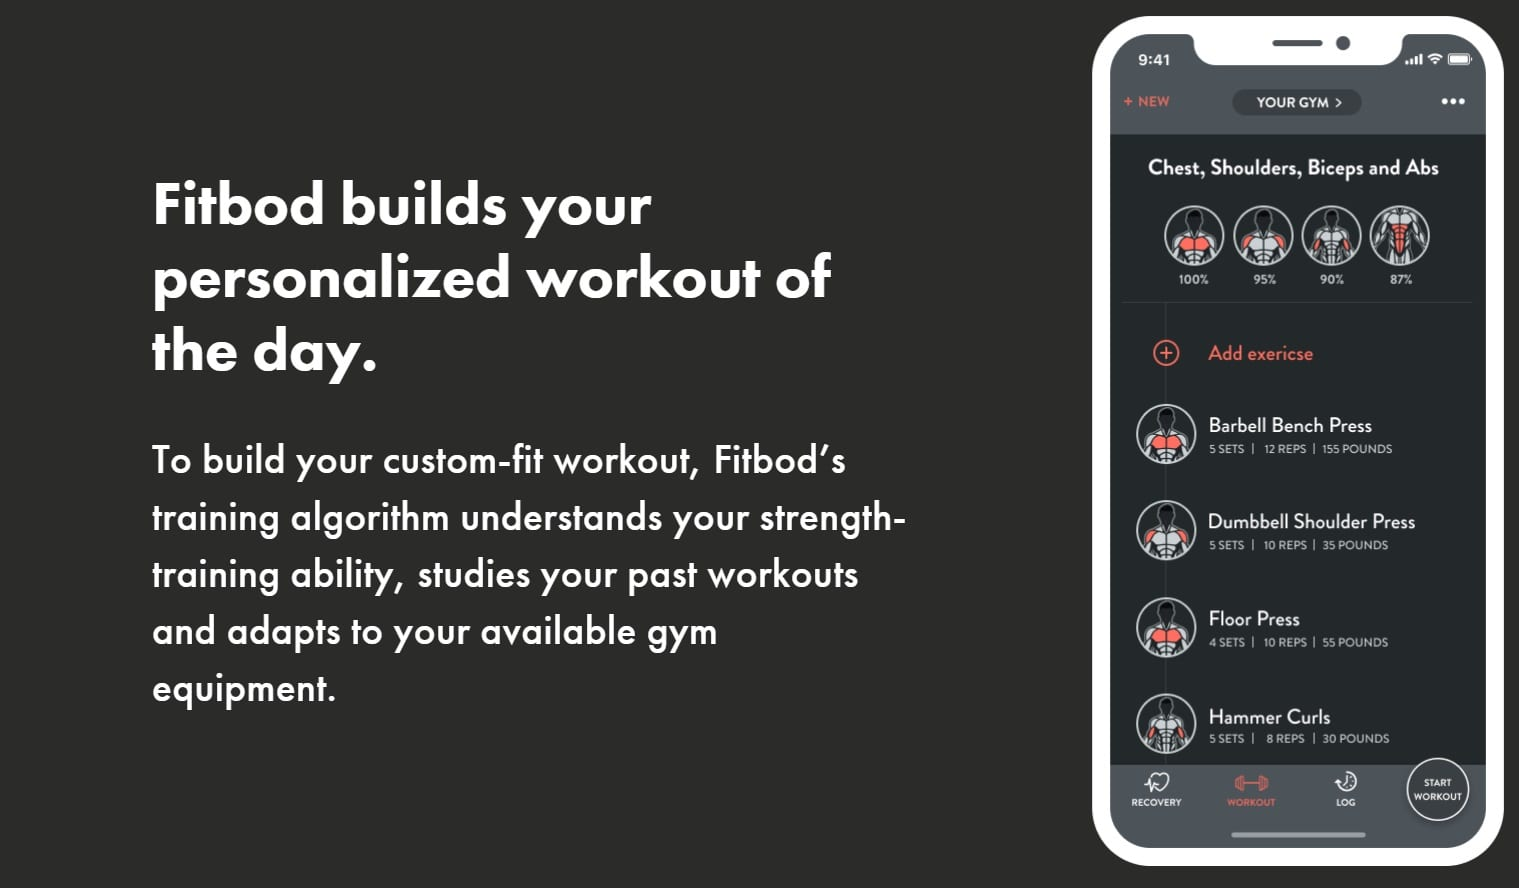 Fitbod Overview